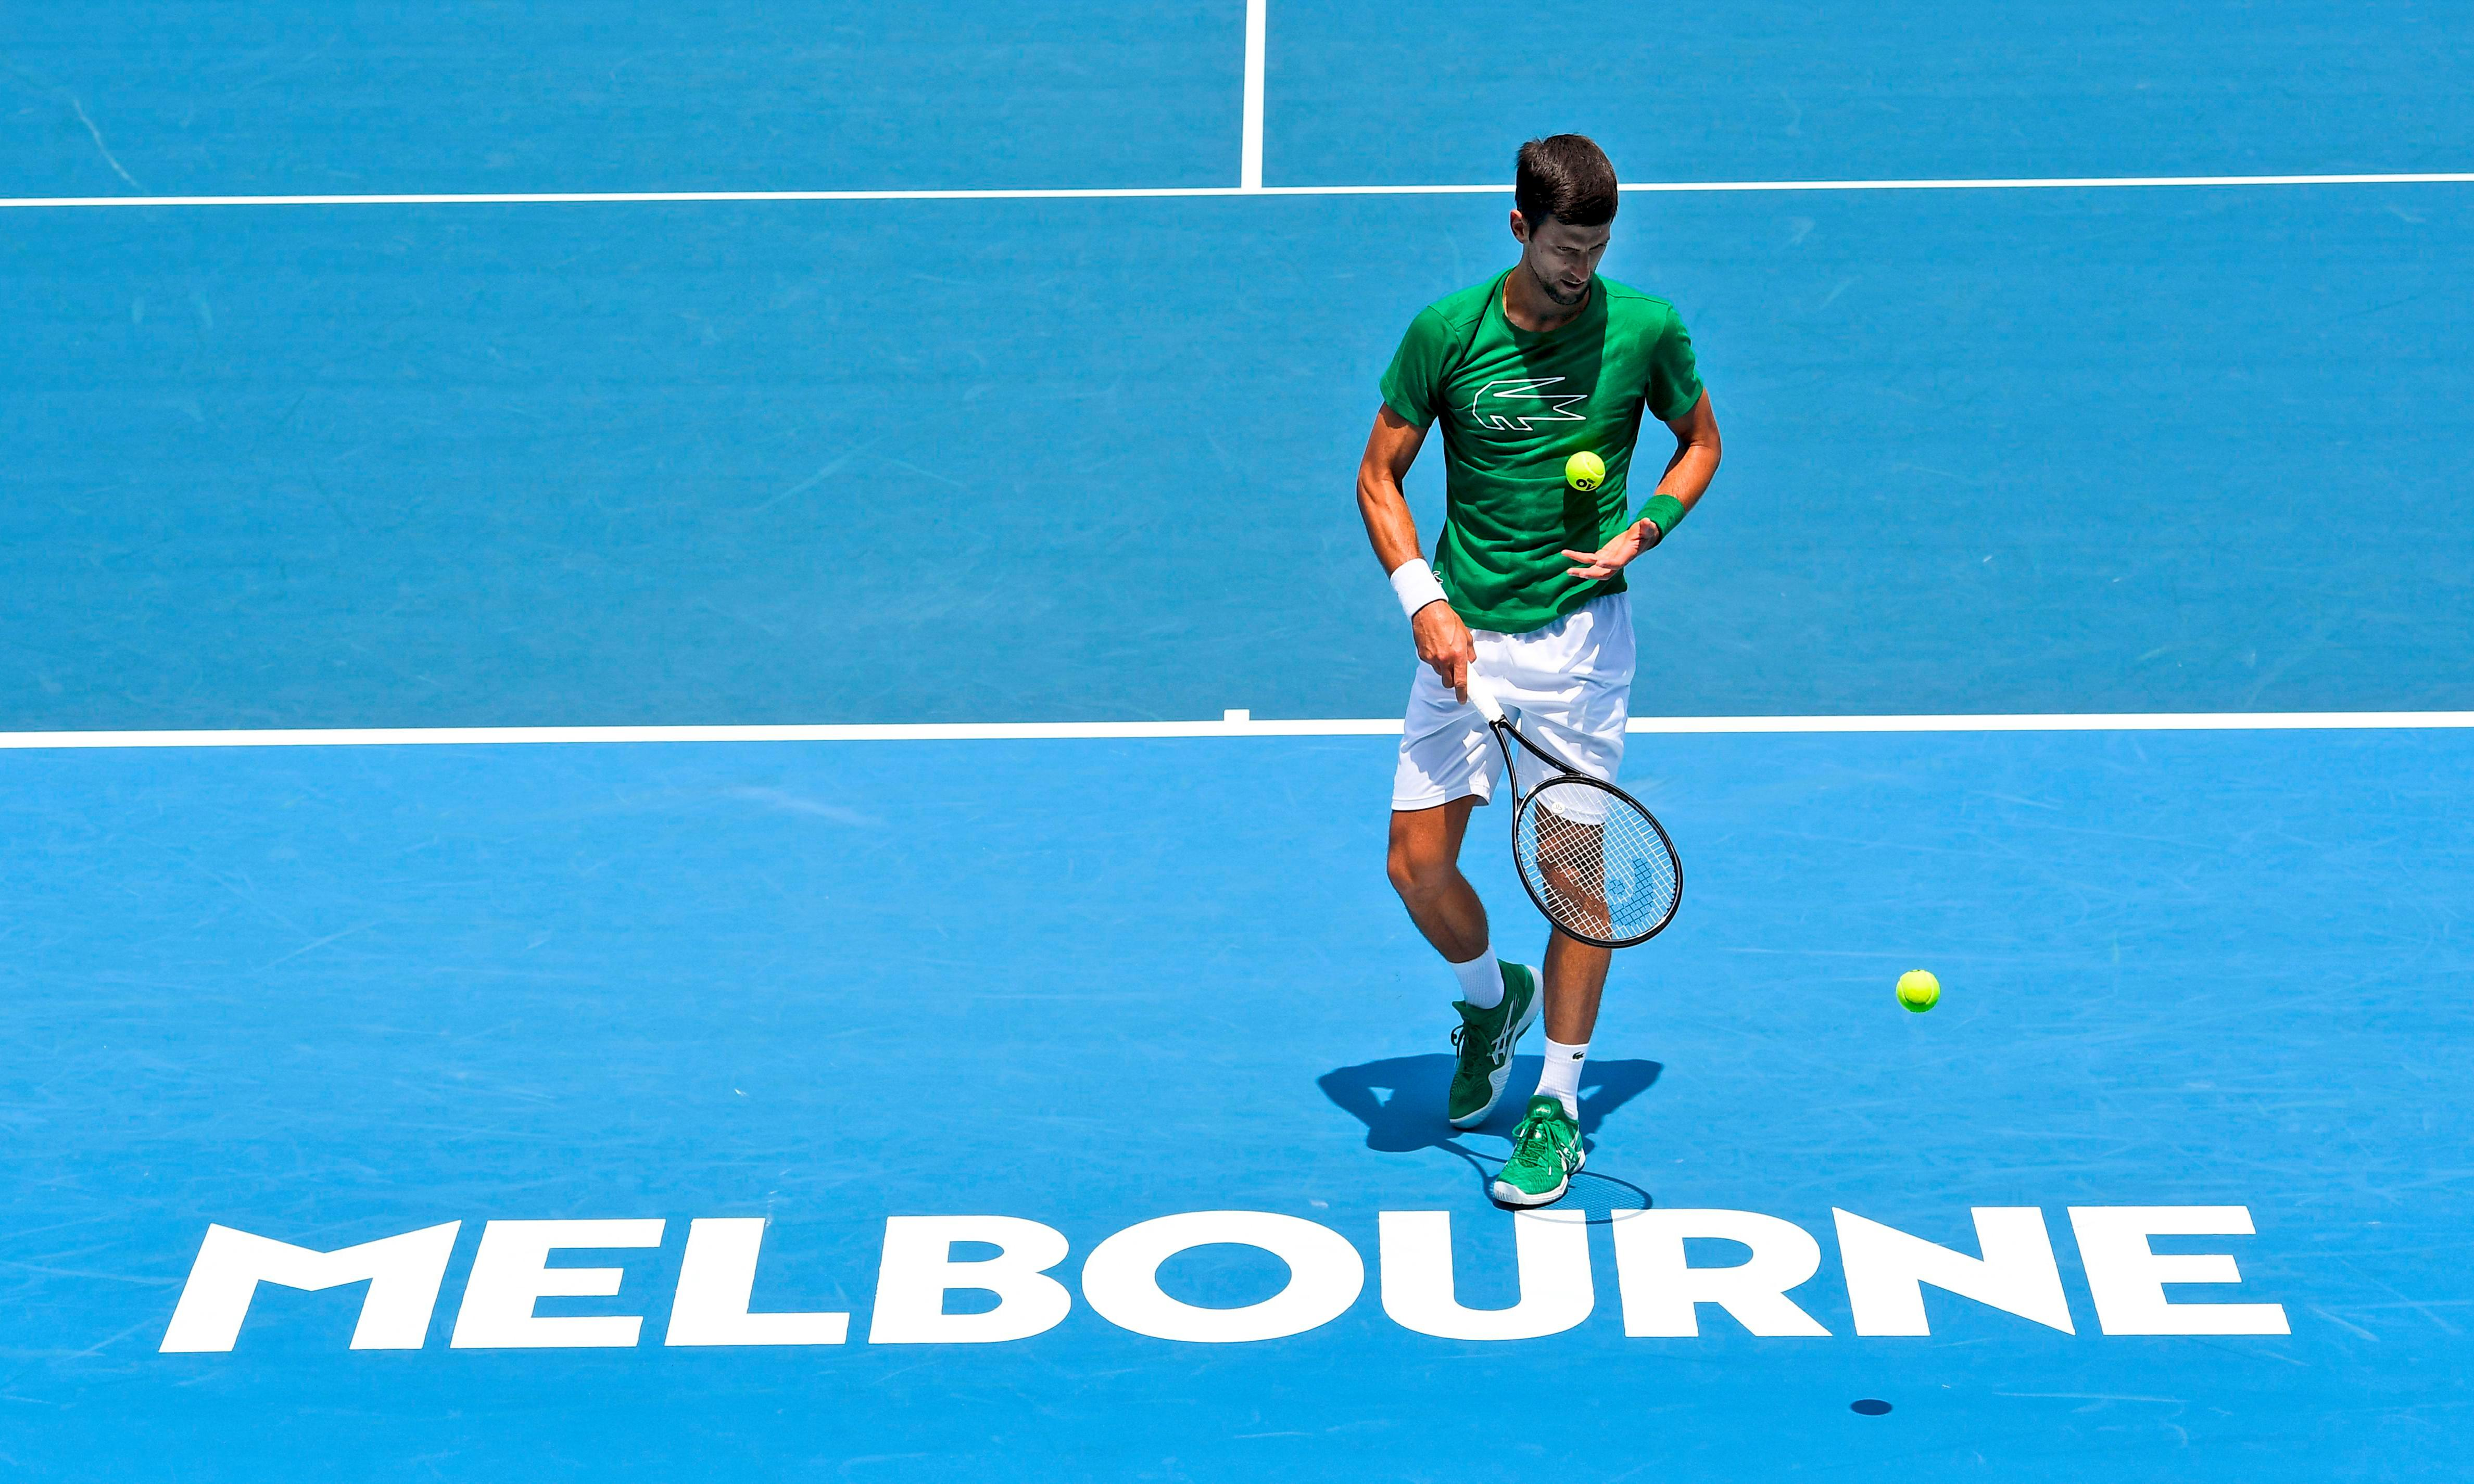 Djokovic's Melbourne haven may be hazardous for Nadal and Federer